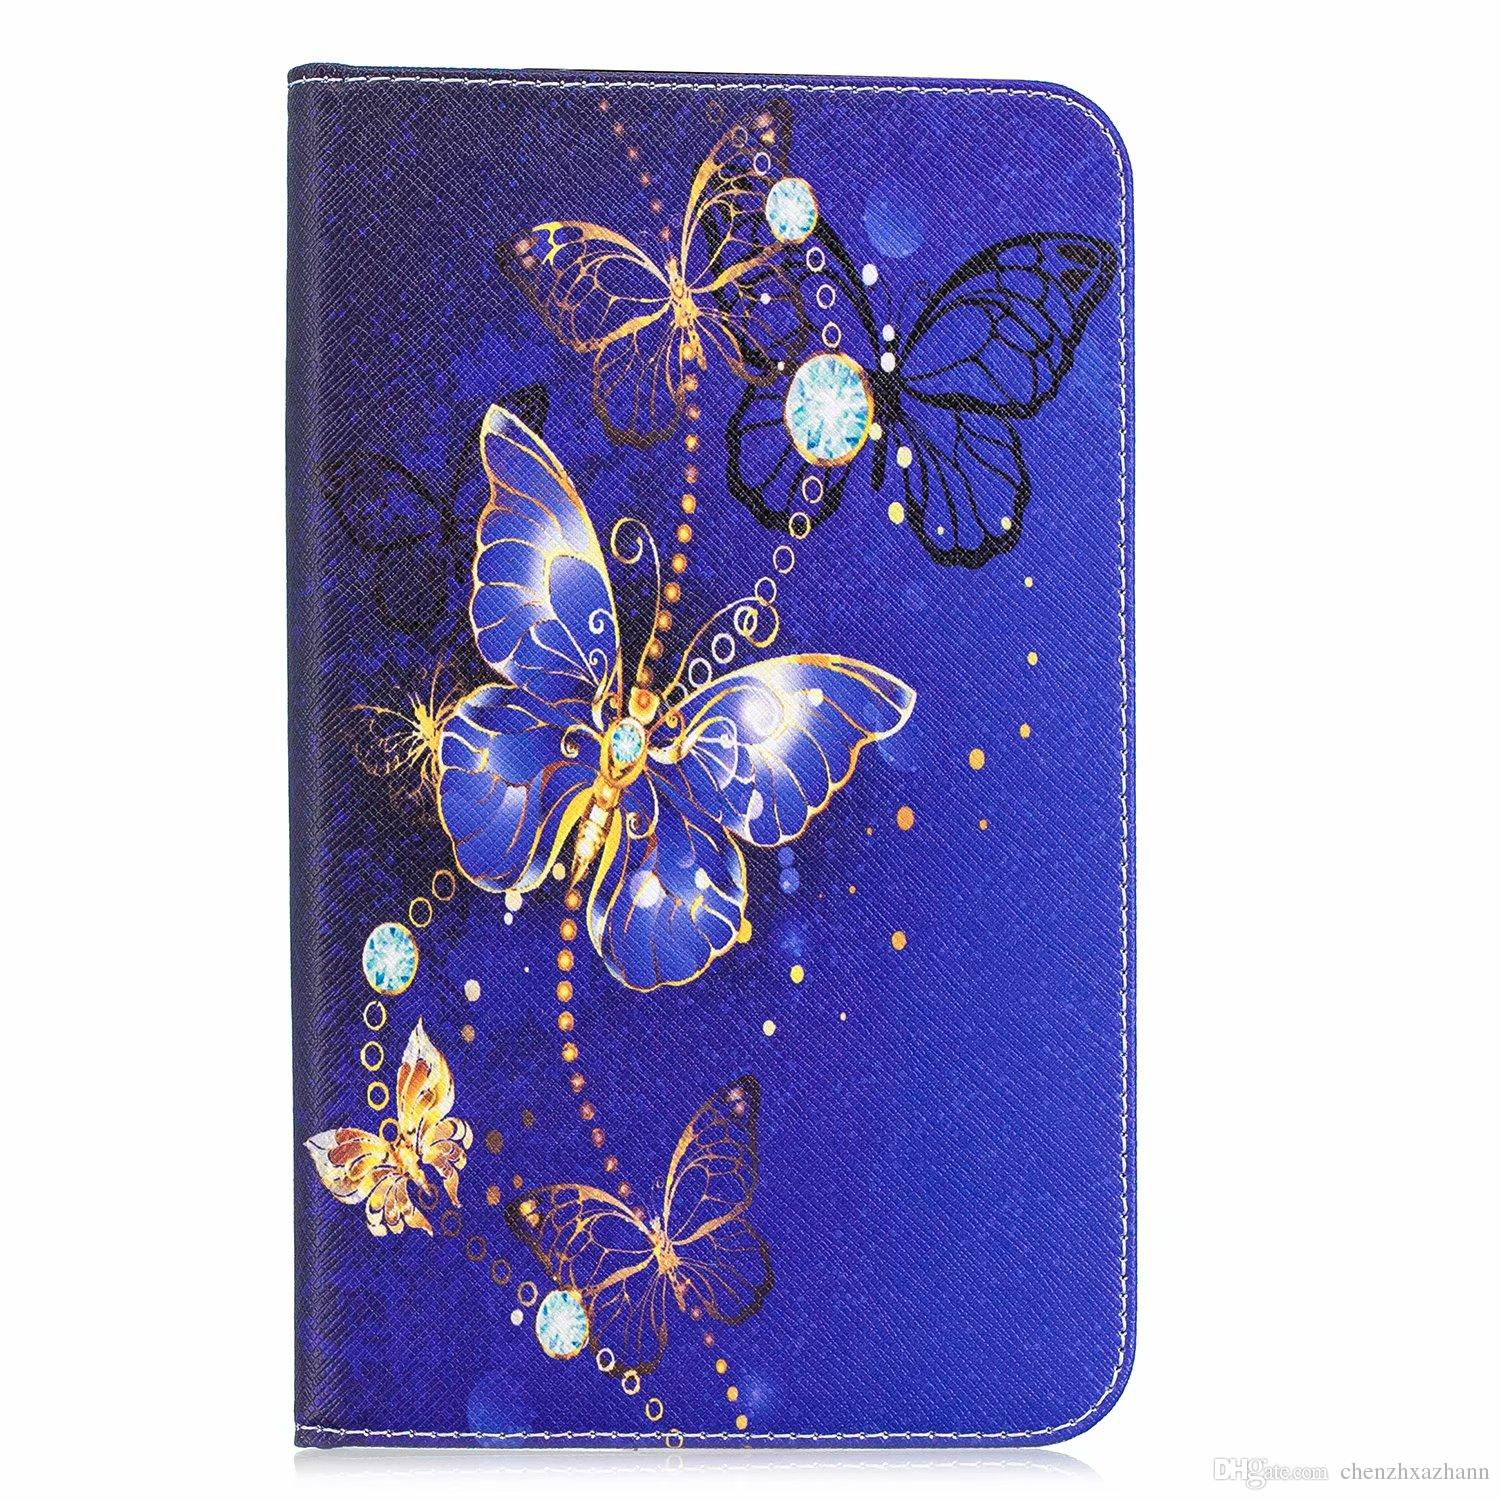 e-tree samsung galaxy tab s2 9.7 case